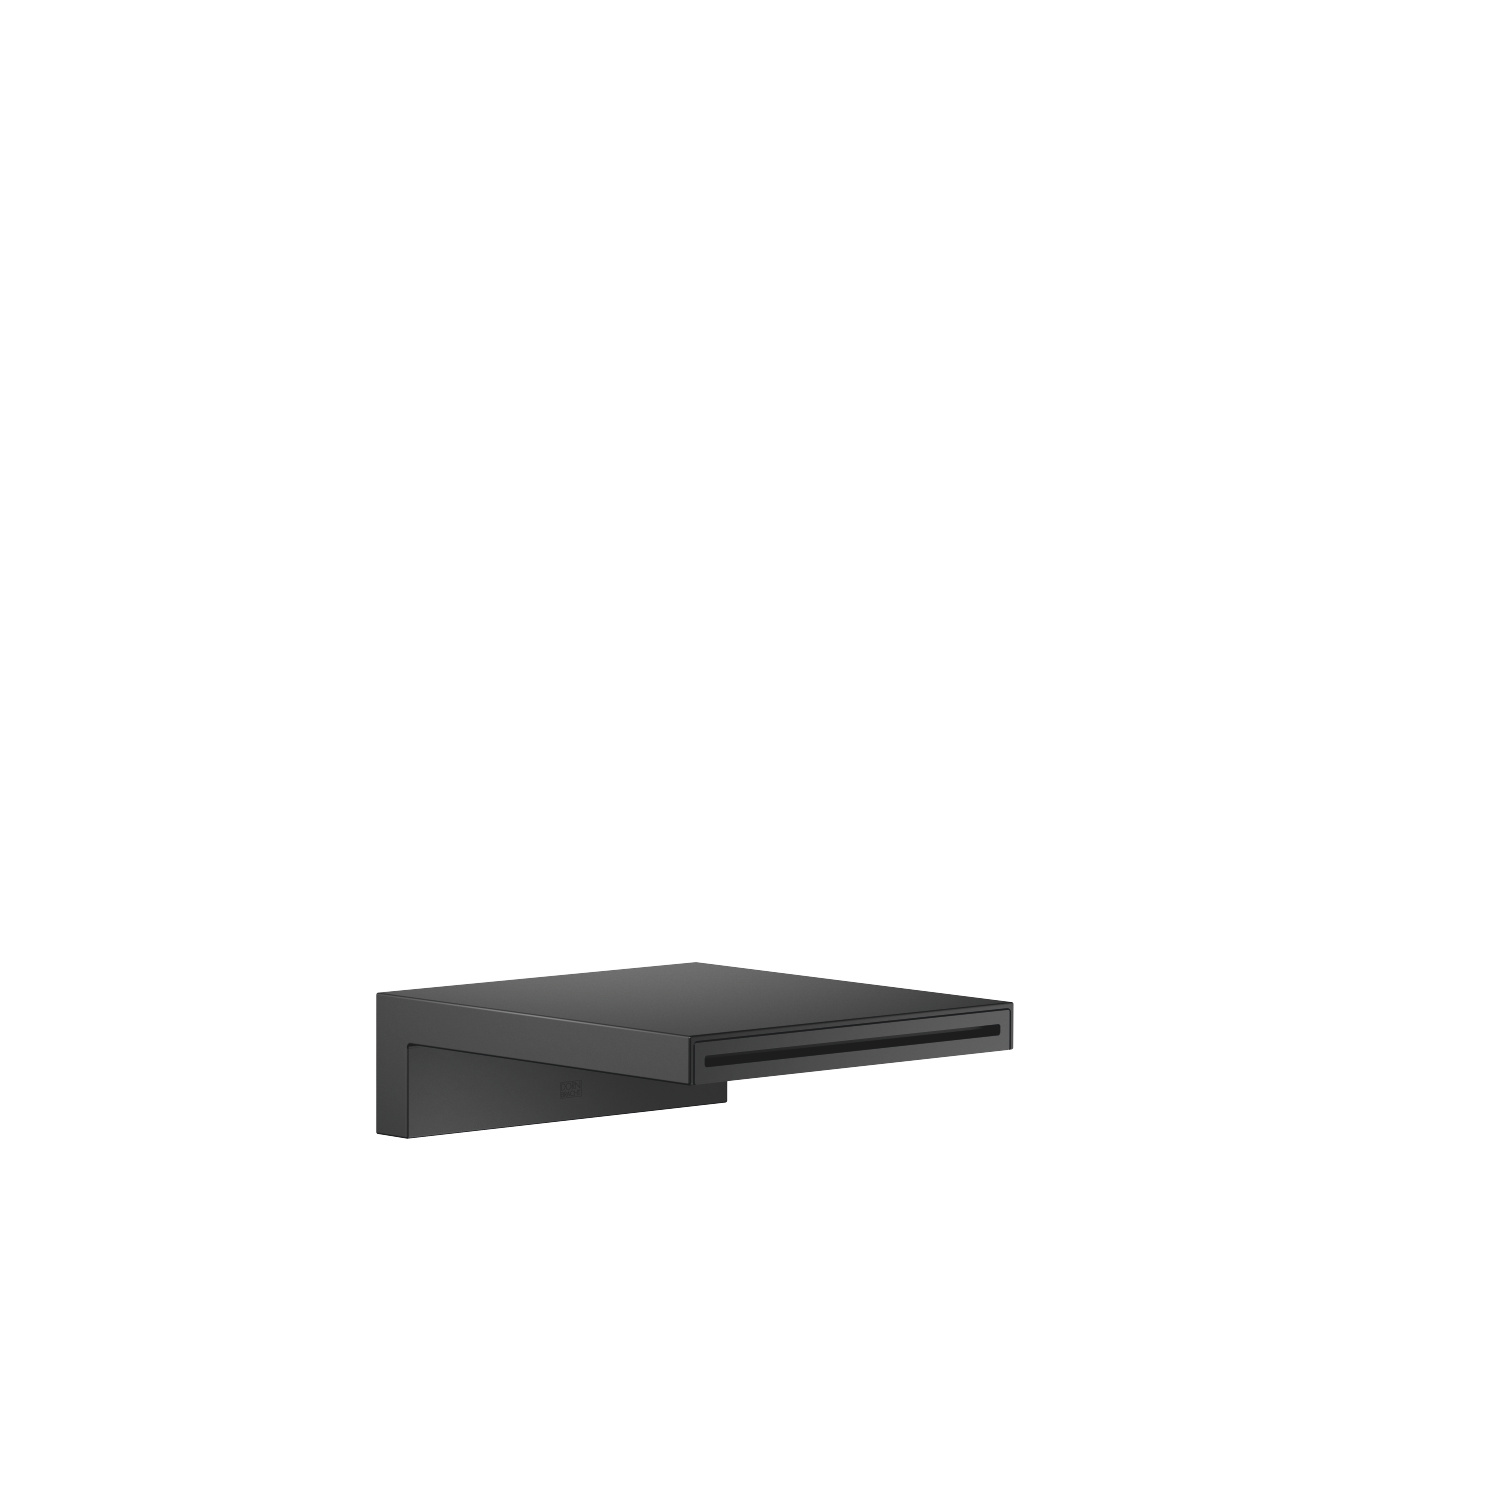 Bath cascade spout for wall mounting - matt black